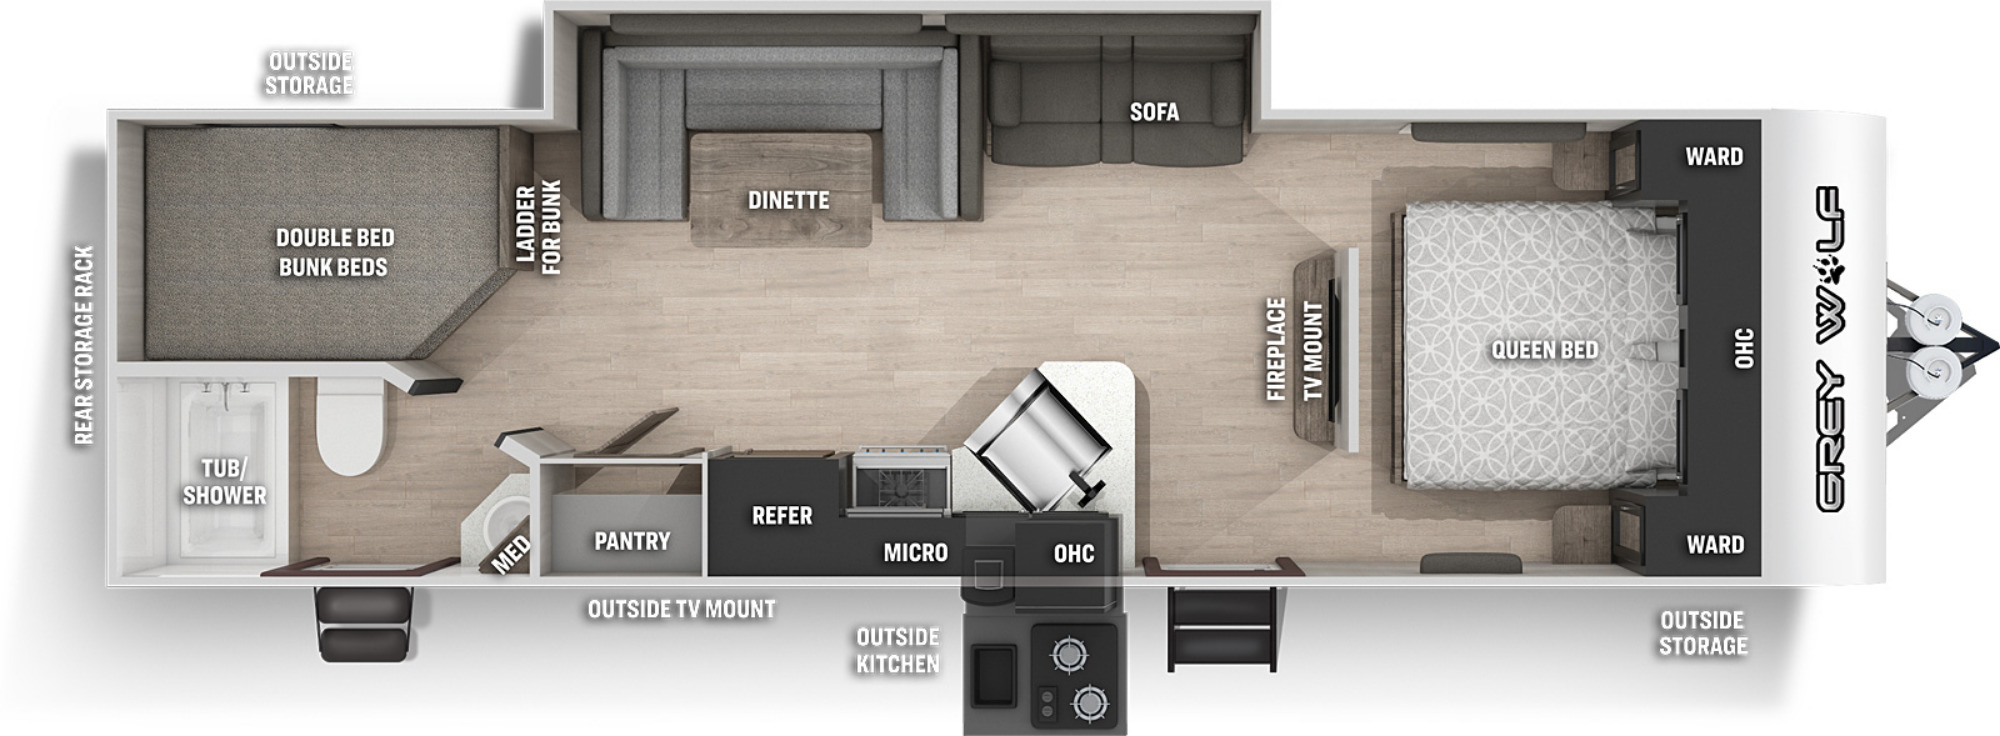 View Floor Plan for 2021 FOREST RIVER GREY WOLF BLACK LABEL 26DBHBL